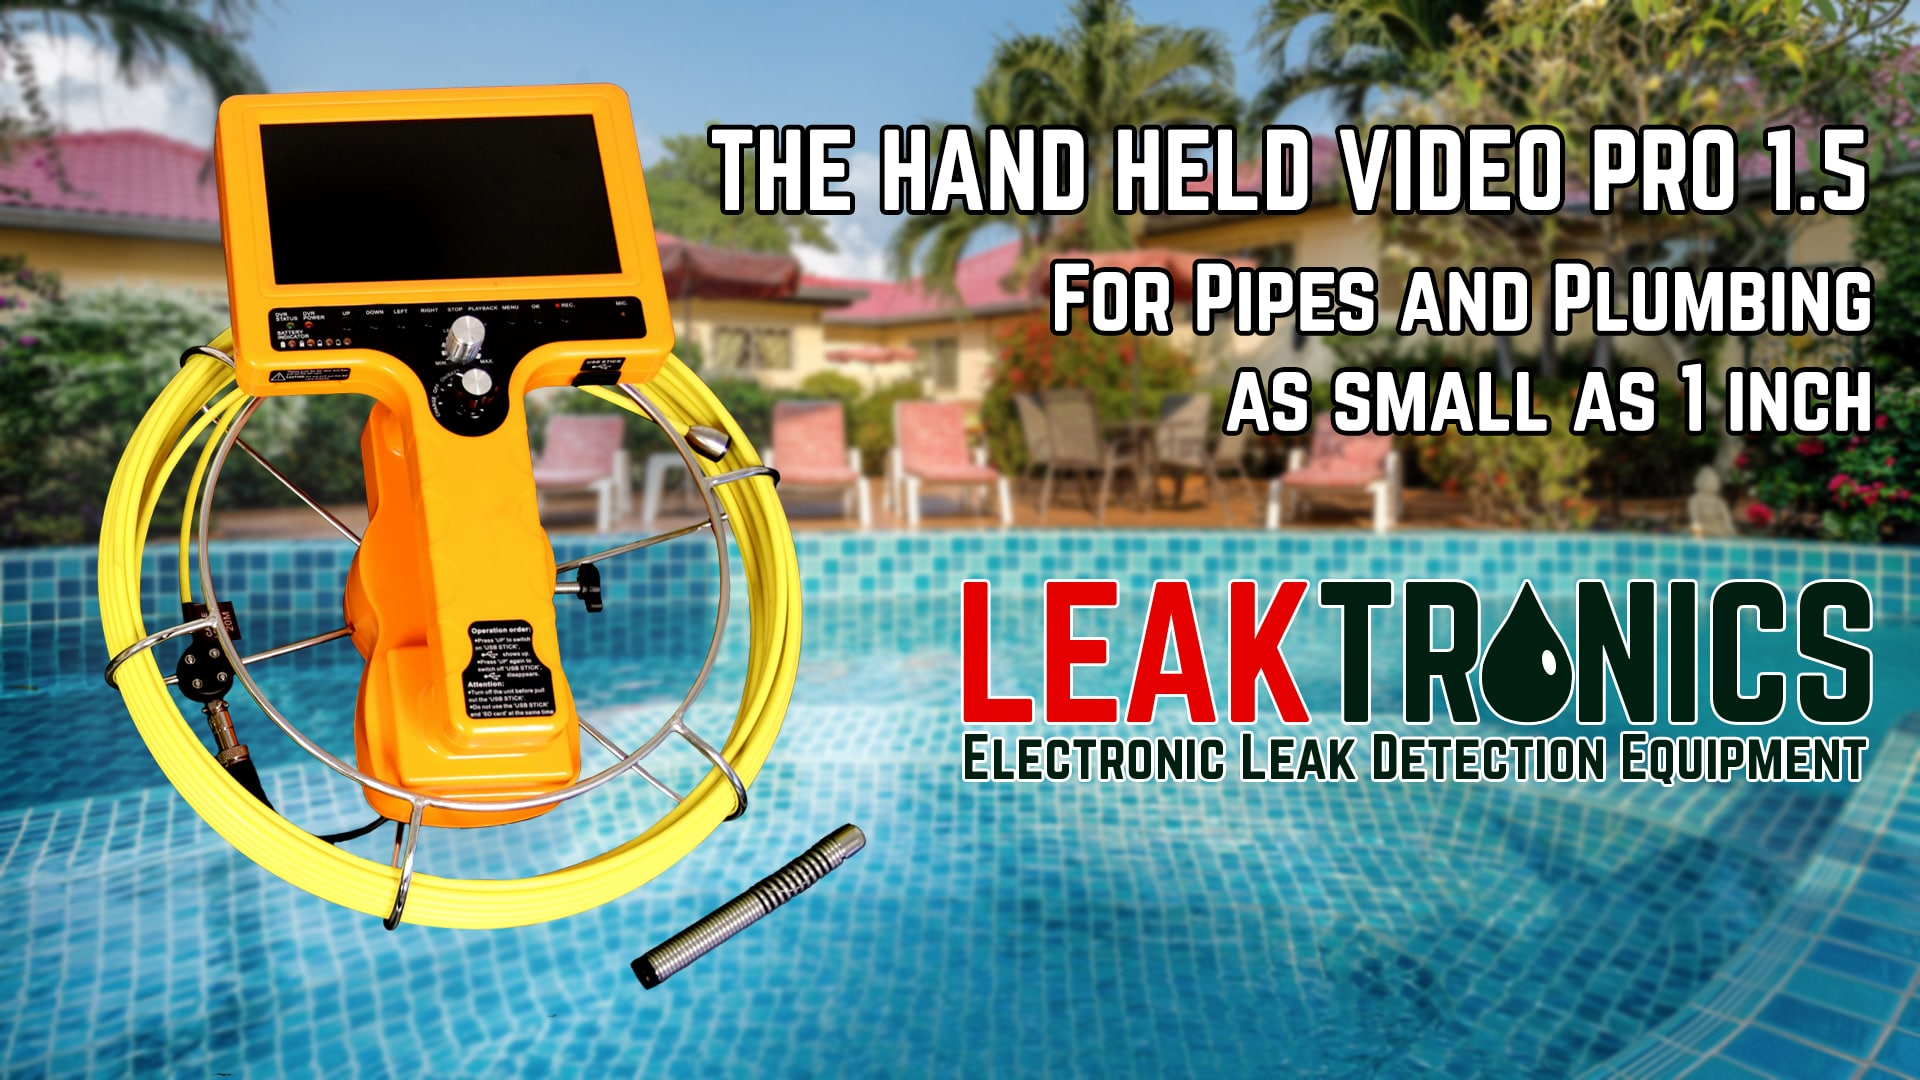 Hand Held Video 1 1/2 inch pipe camera - One Inch Pipe Camera